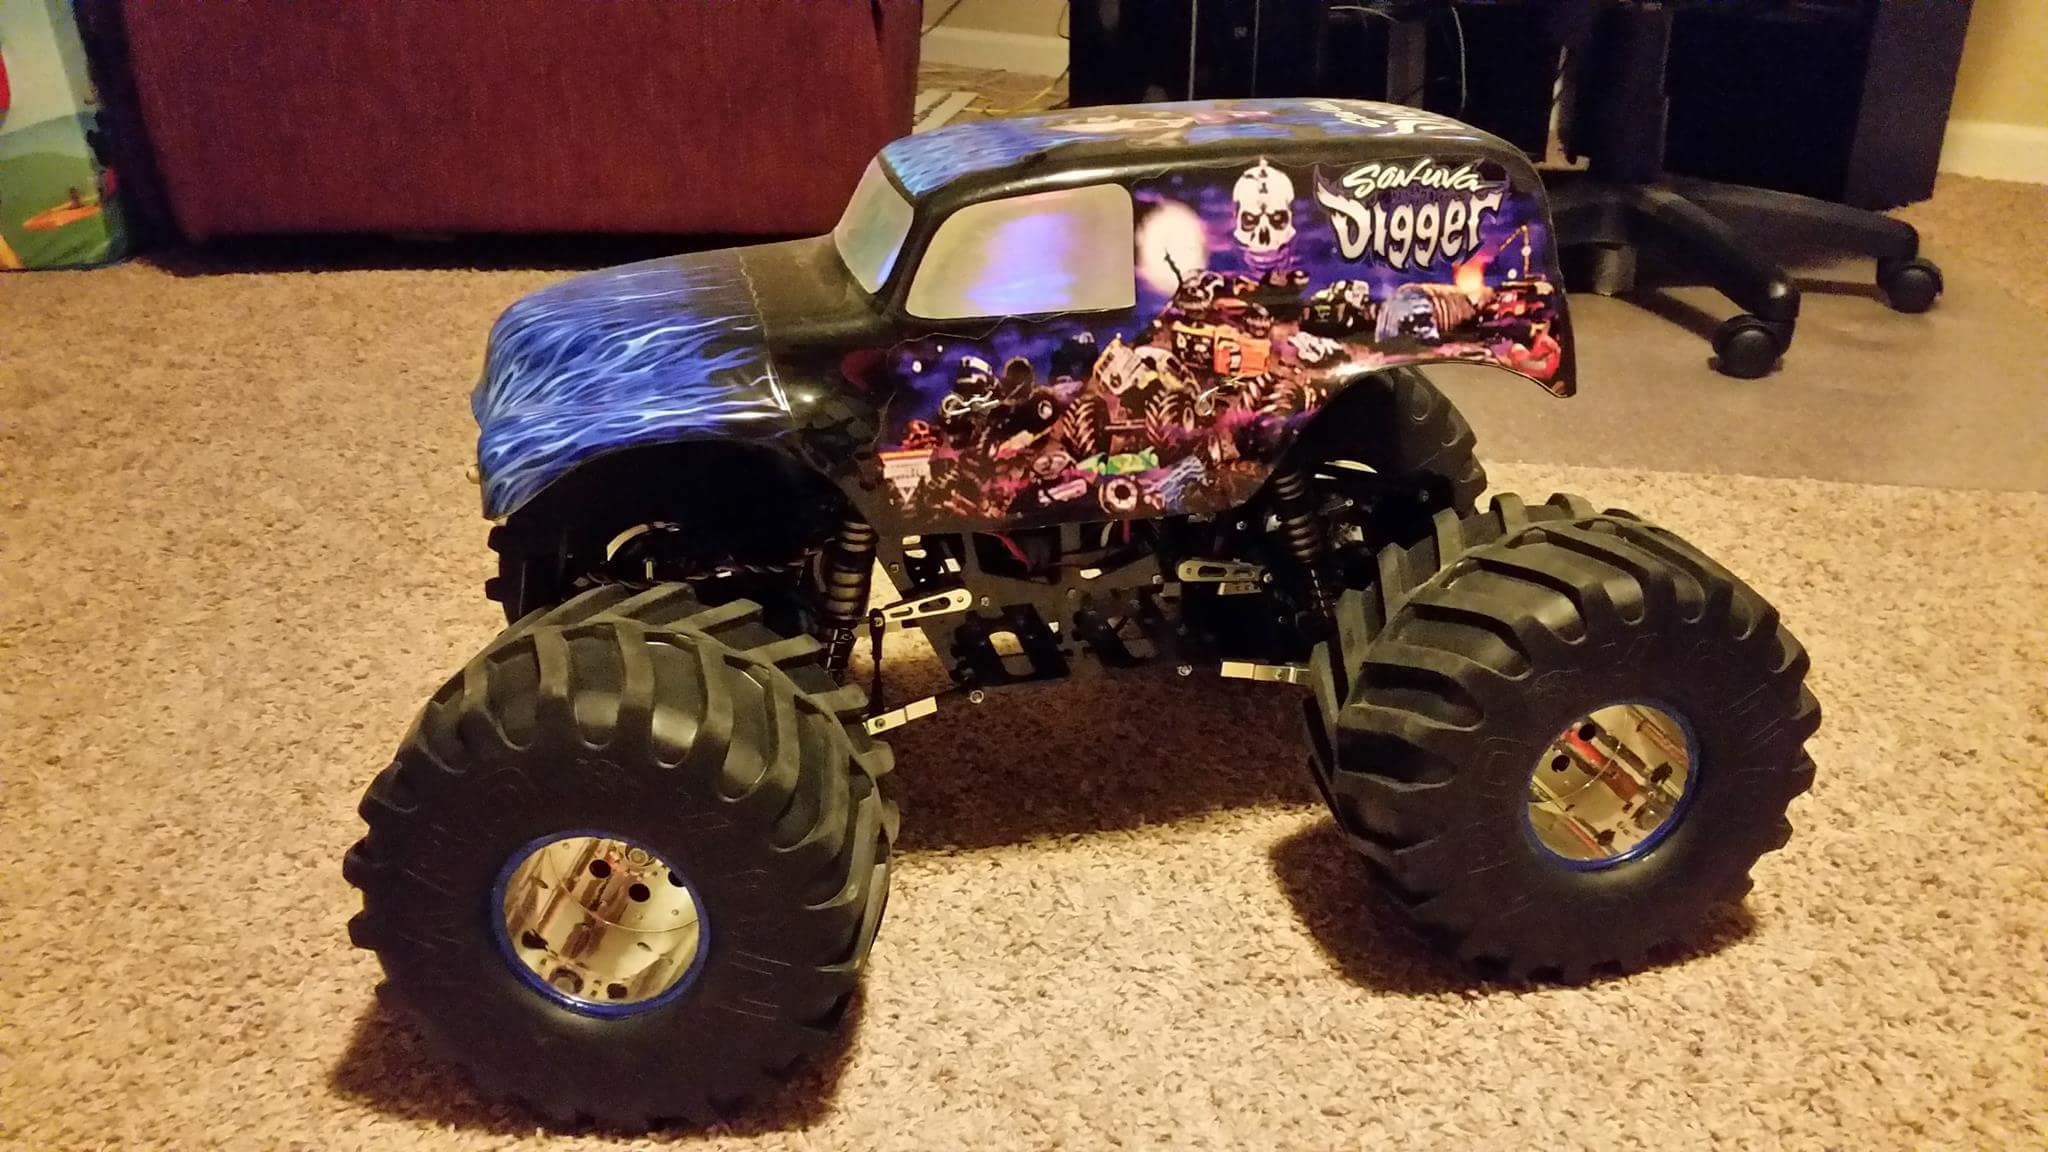 Big Truck Trader >> Thunder Tech Ripper XL Son UVA Digger Monster Truck - R/C Tech Forums